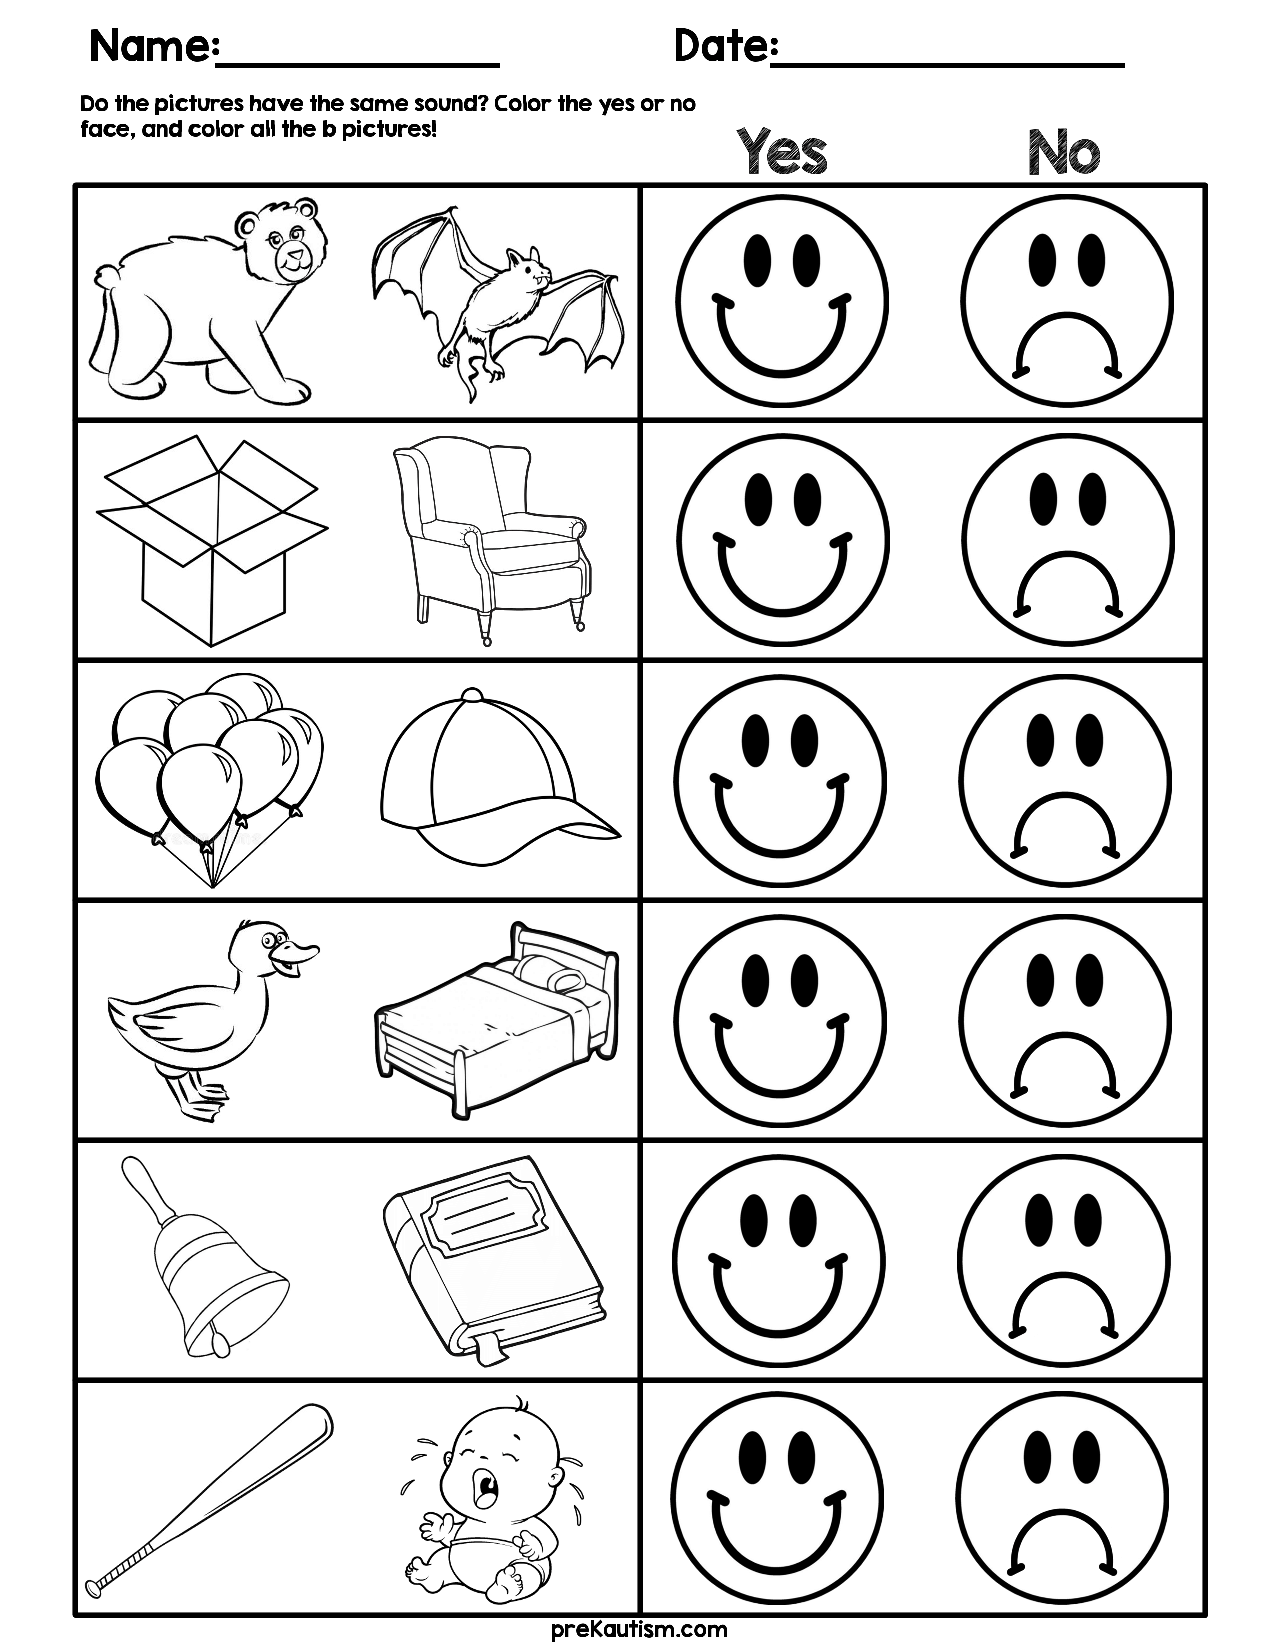 Consonant Sound Match Worksheets